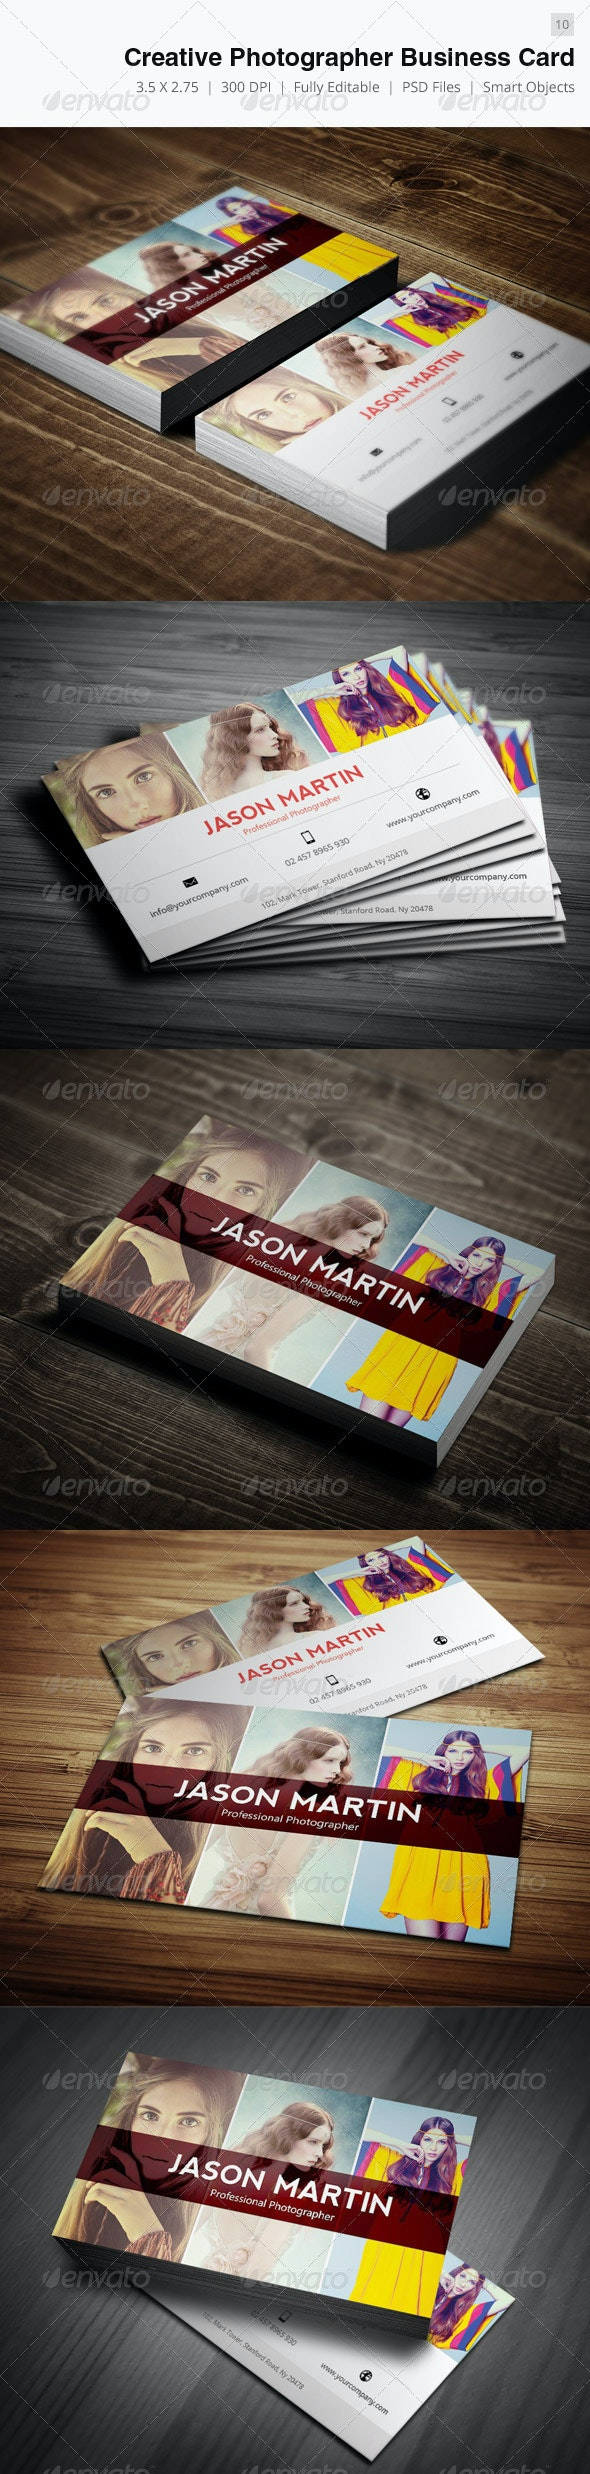 Creative Photographer Business Card - 10 - Creative Business Cards